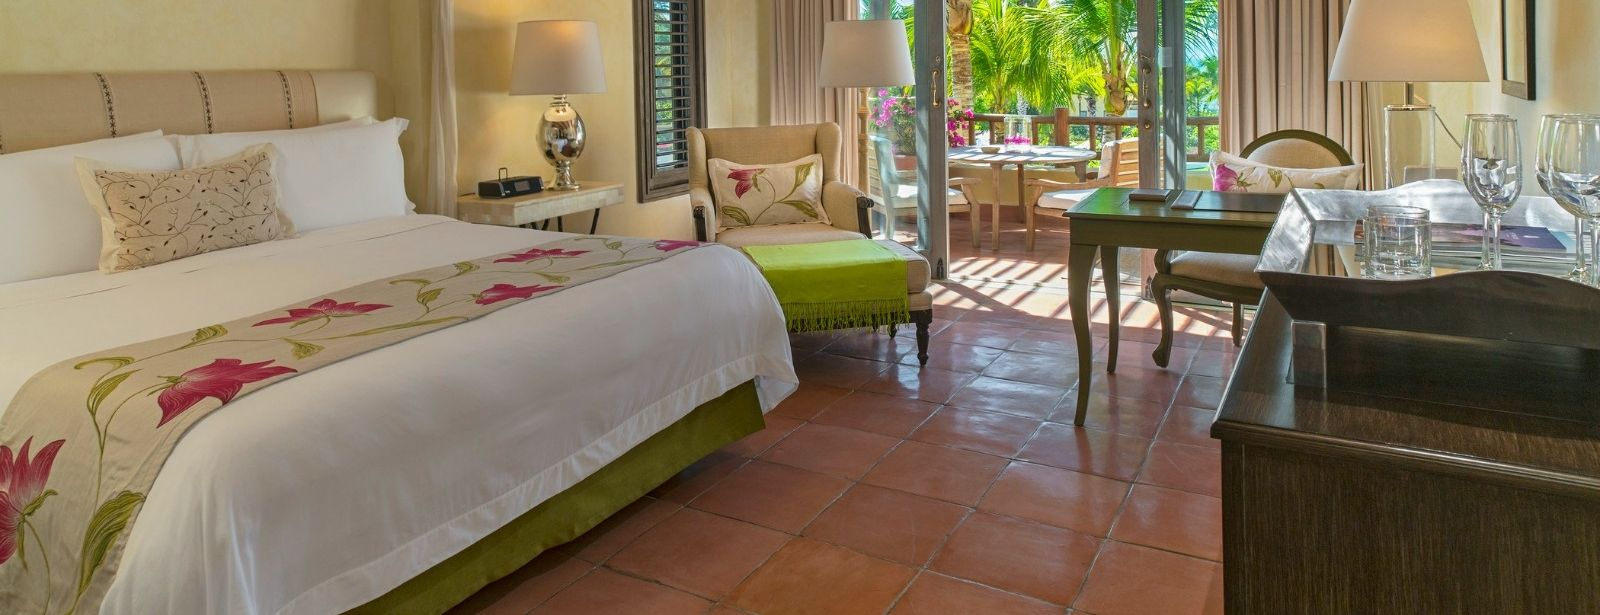 Deluxe Room - The St. Regis Punta Mita